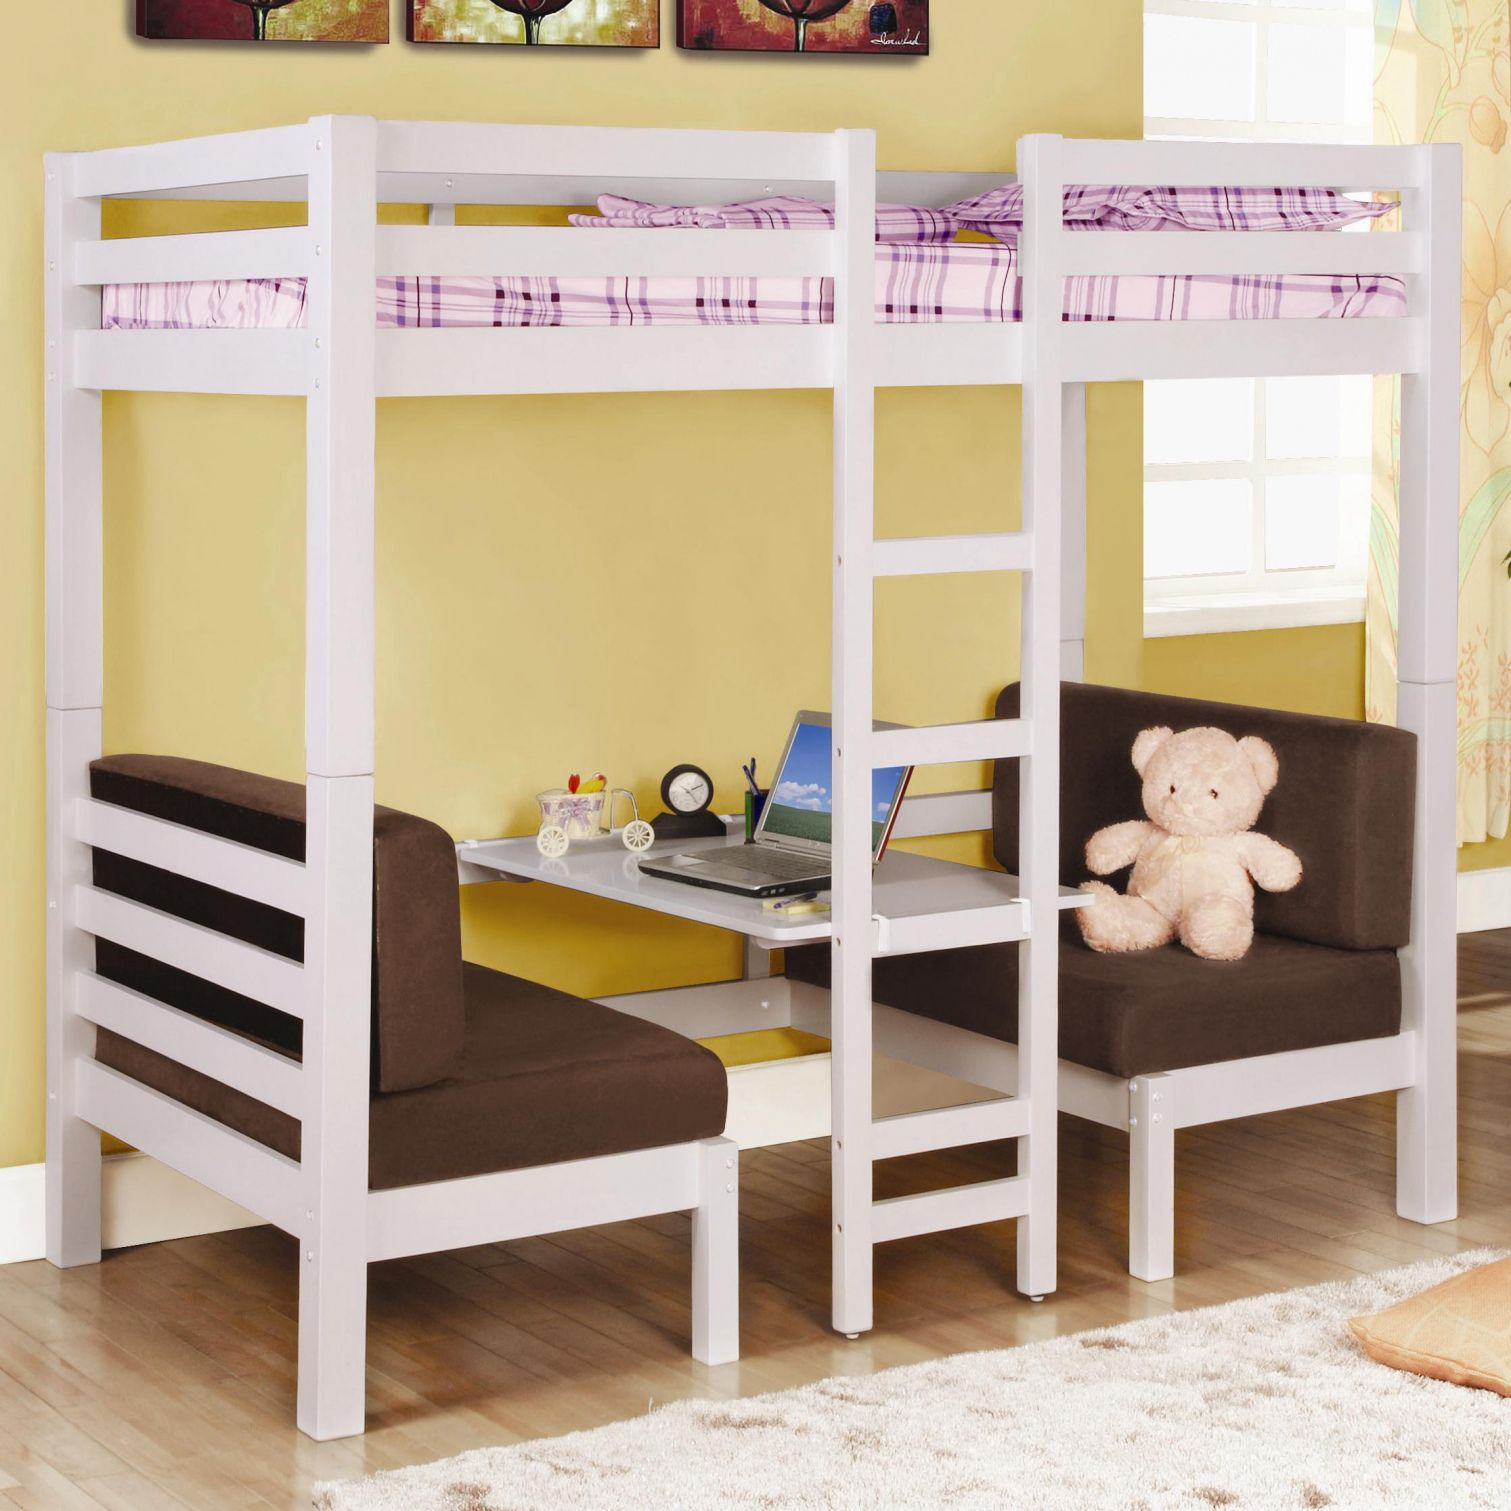 Childrens Bunk Beds With Desk And Futon Interior Paint Color Trends Check More At Http Billiepiperfan Com